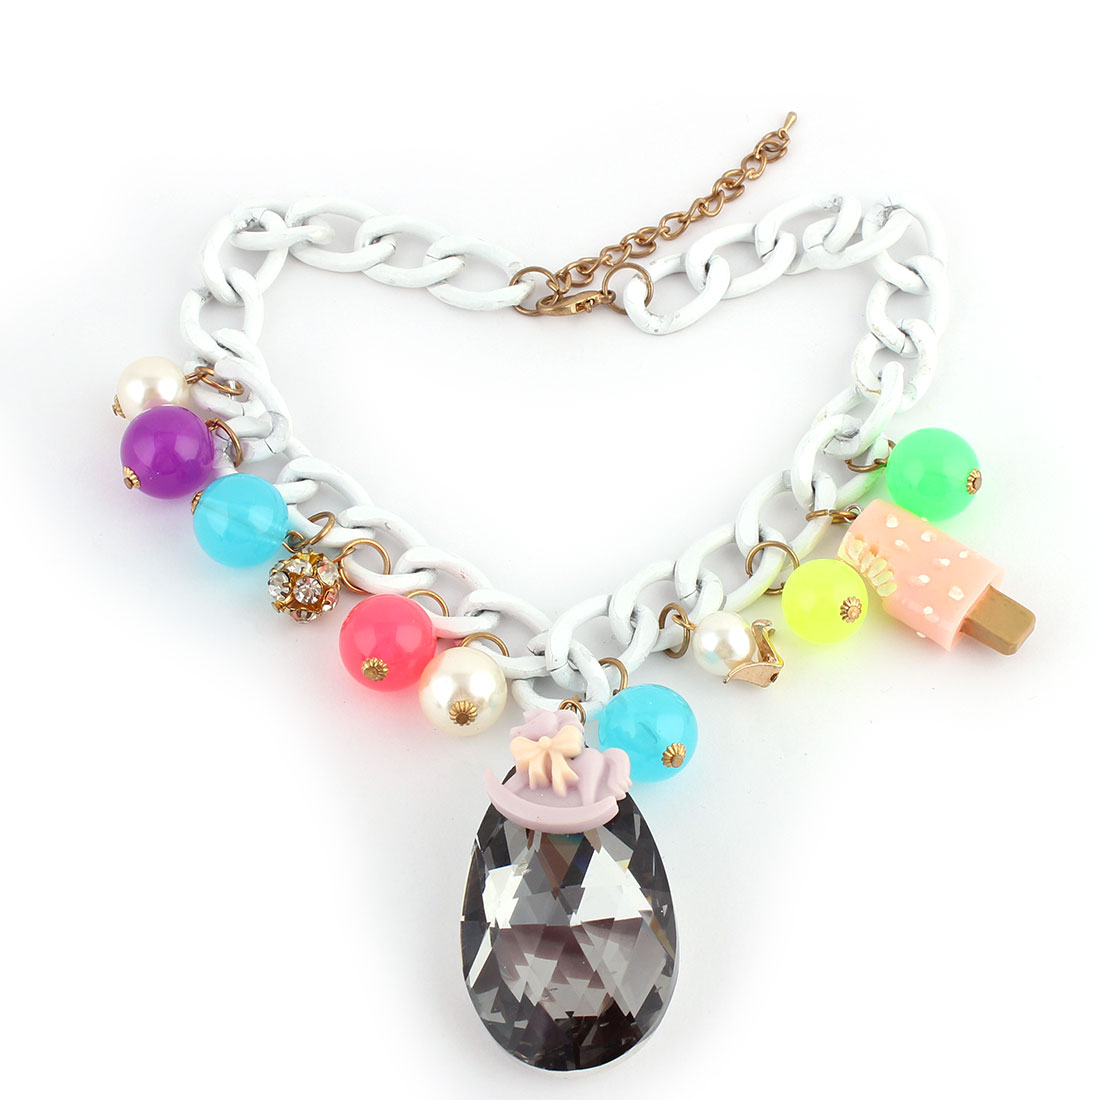 Water-drop Shape Pendant Beads Decor Lobster Buckle Strip Link Chain Necklace